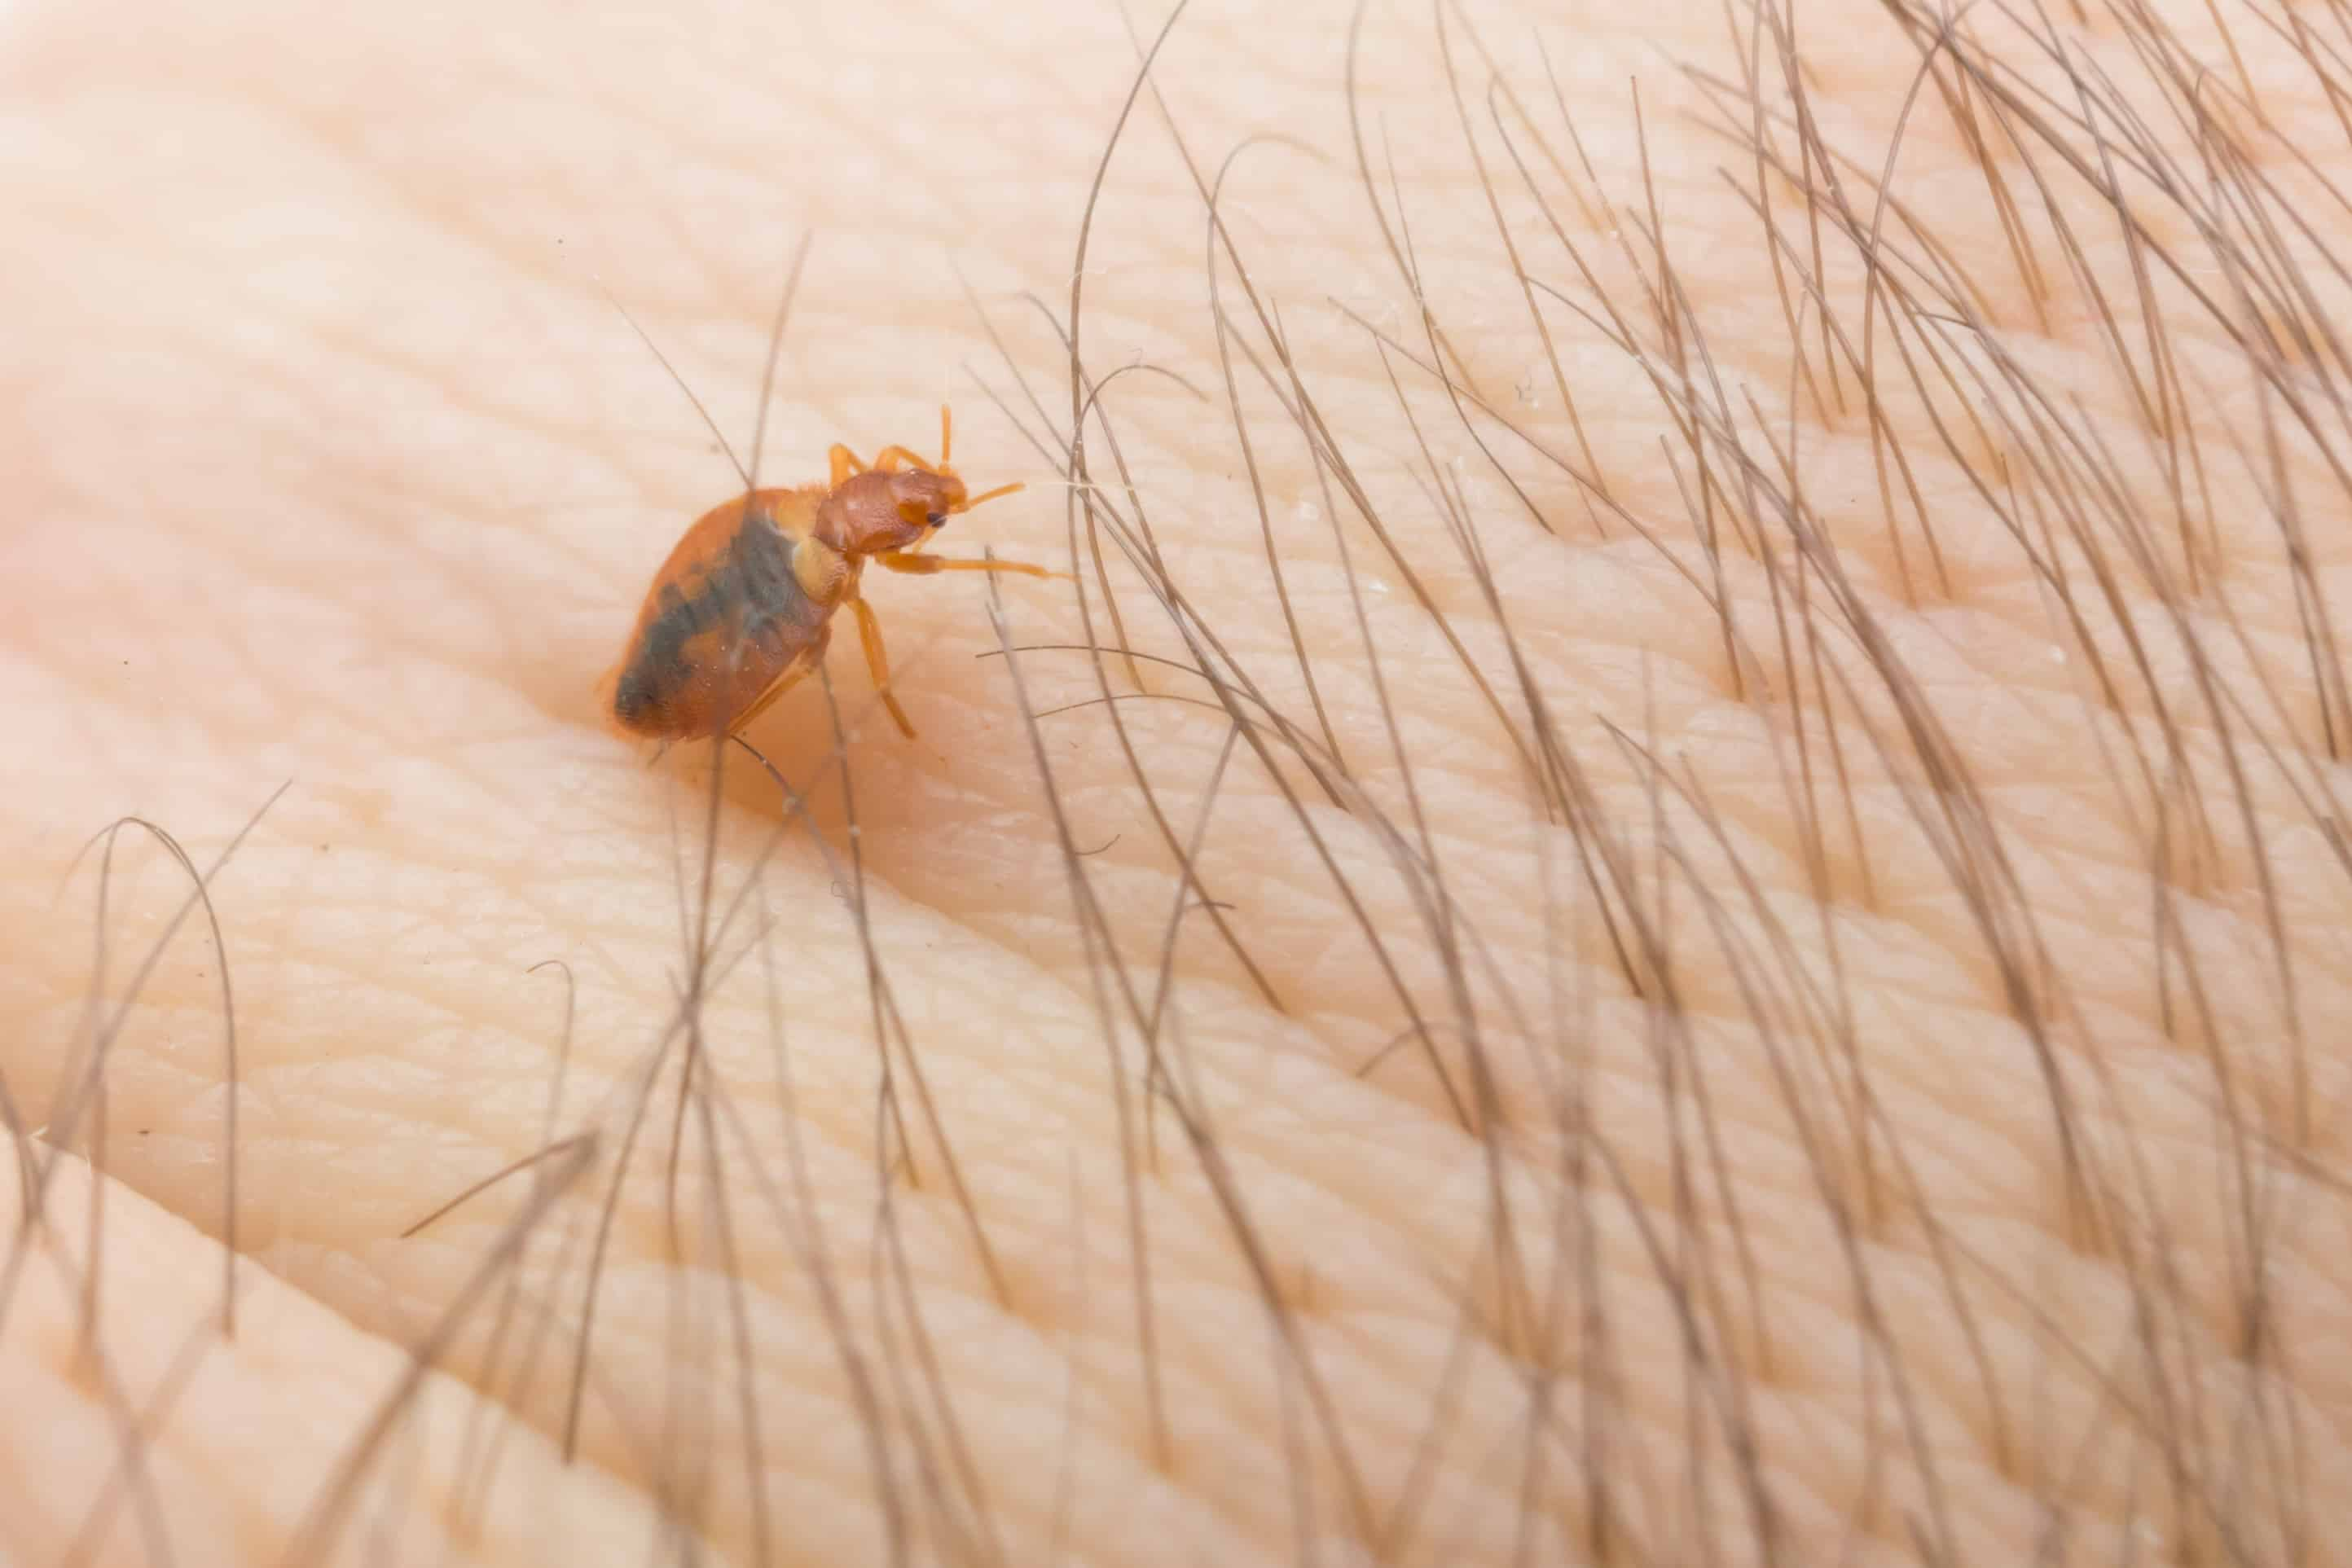 macro image of a bed bug crawling on the skin of a human